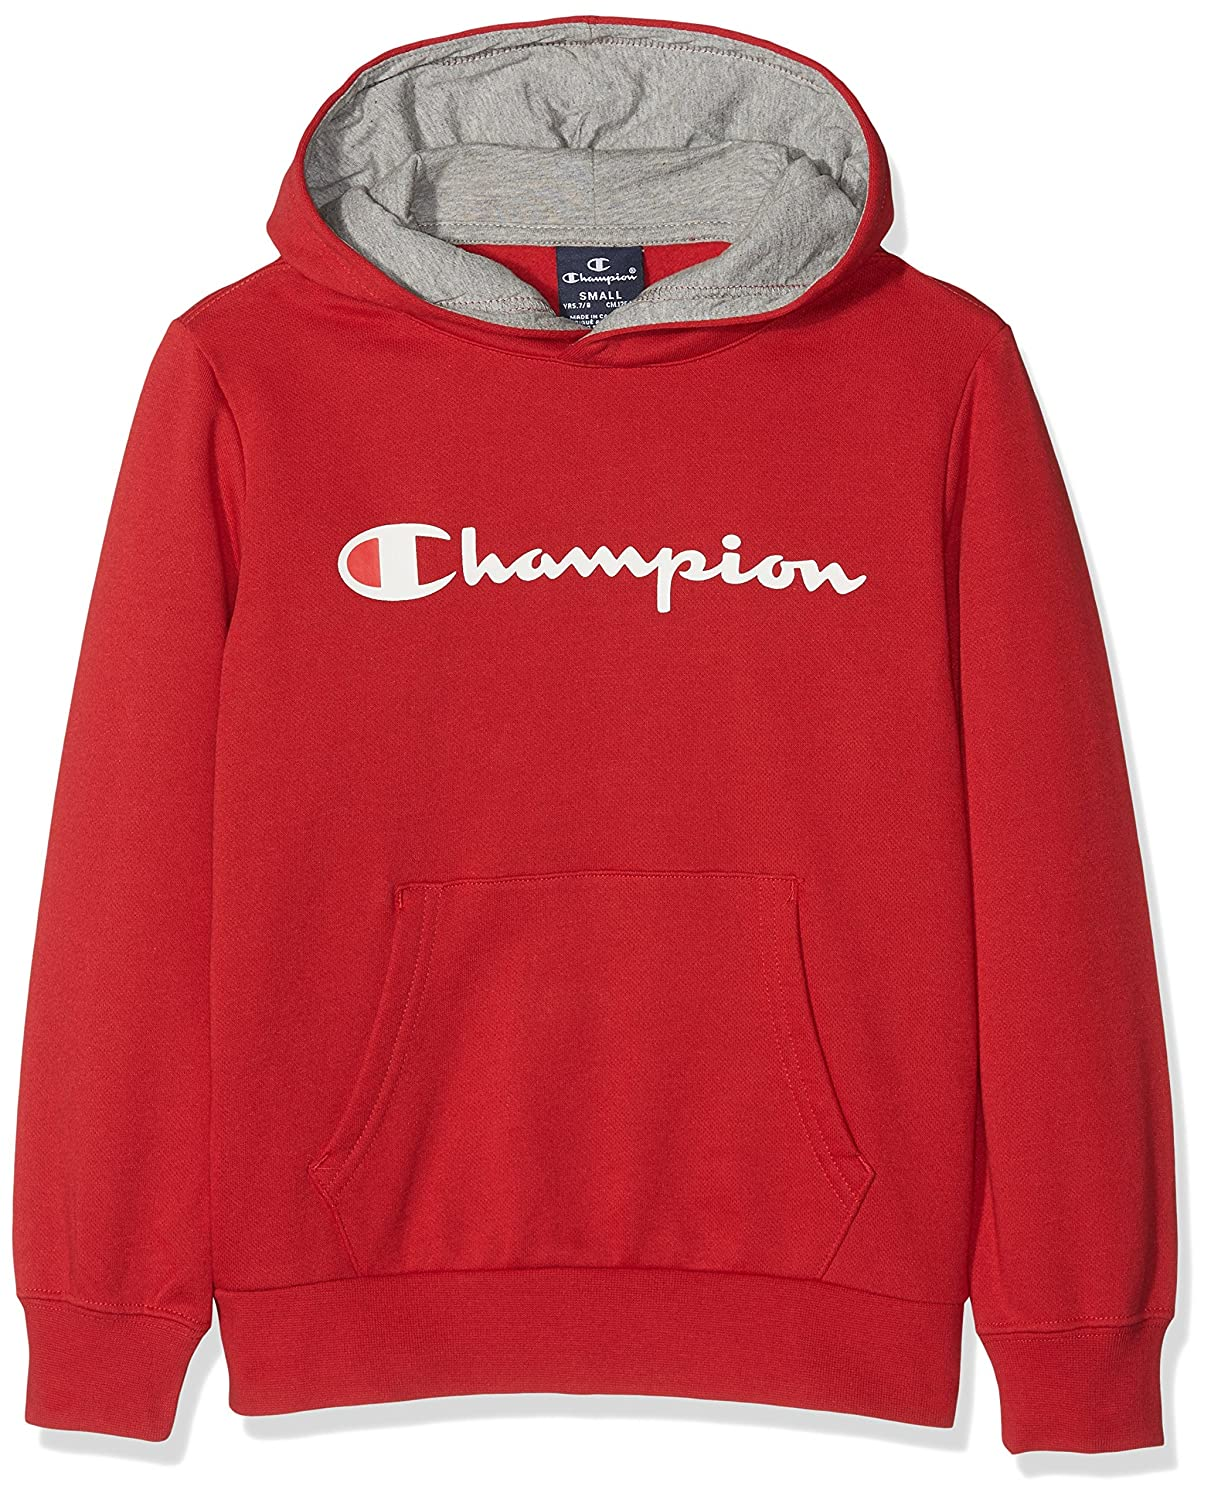 Champion Boy's Hooded Sweatshirt Hoodie 304745